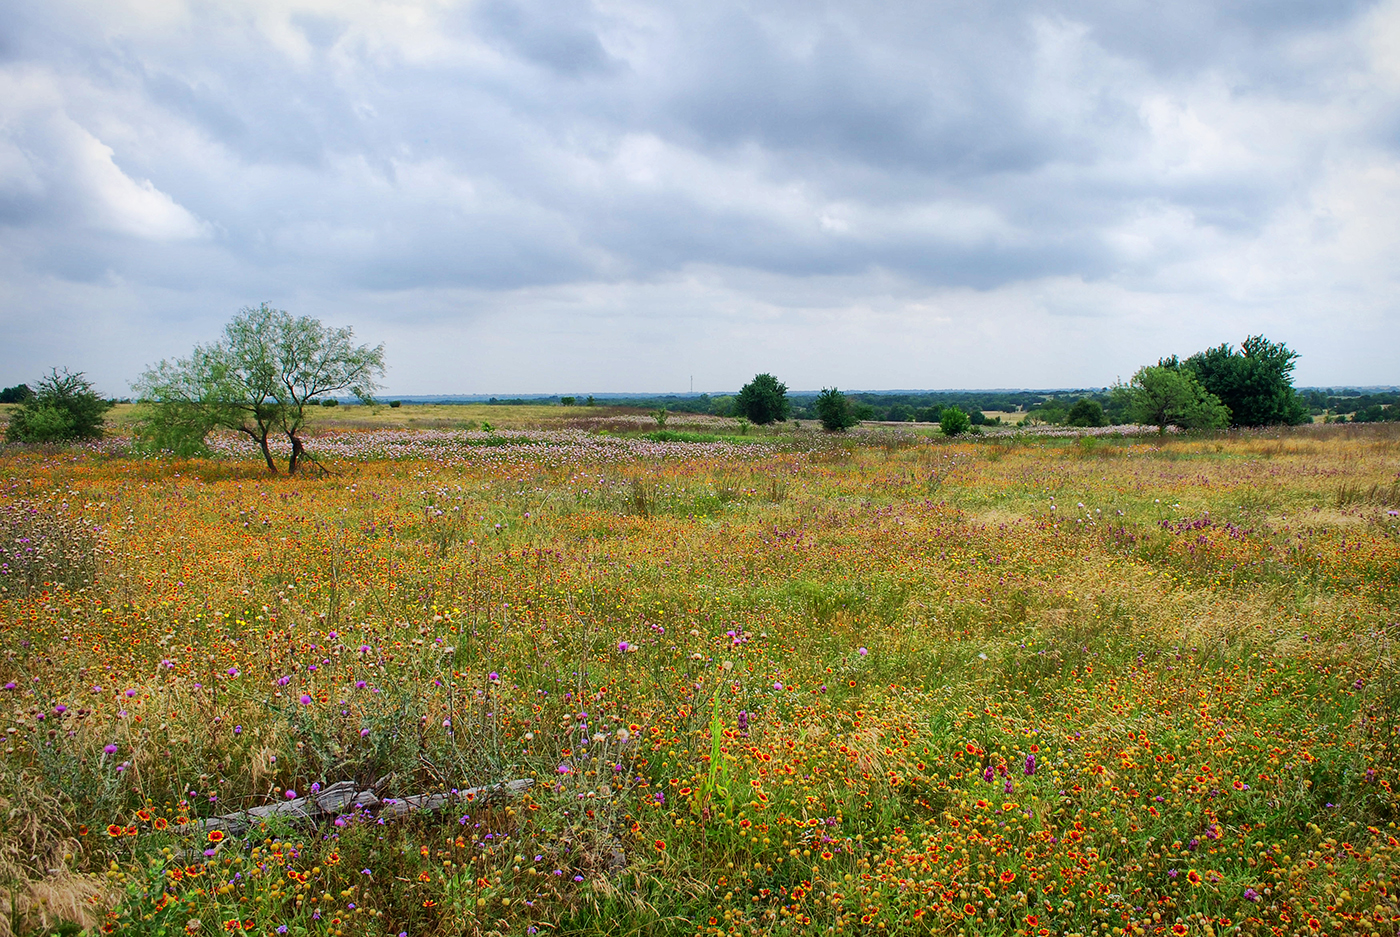 Mike Williams has been working on the Simpson Prairie for 20 years, gradually introducing plants and composing a striking landscape. Scarlet and yellow gaillardias are prominently featured in the meadown near Crawford, Texas.